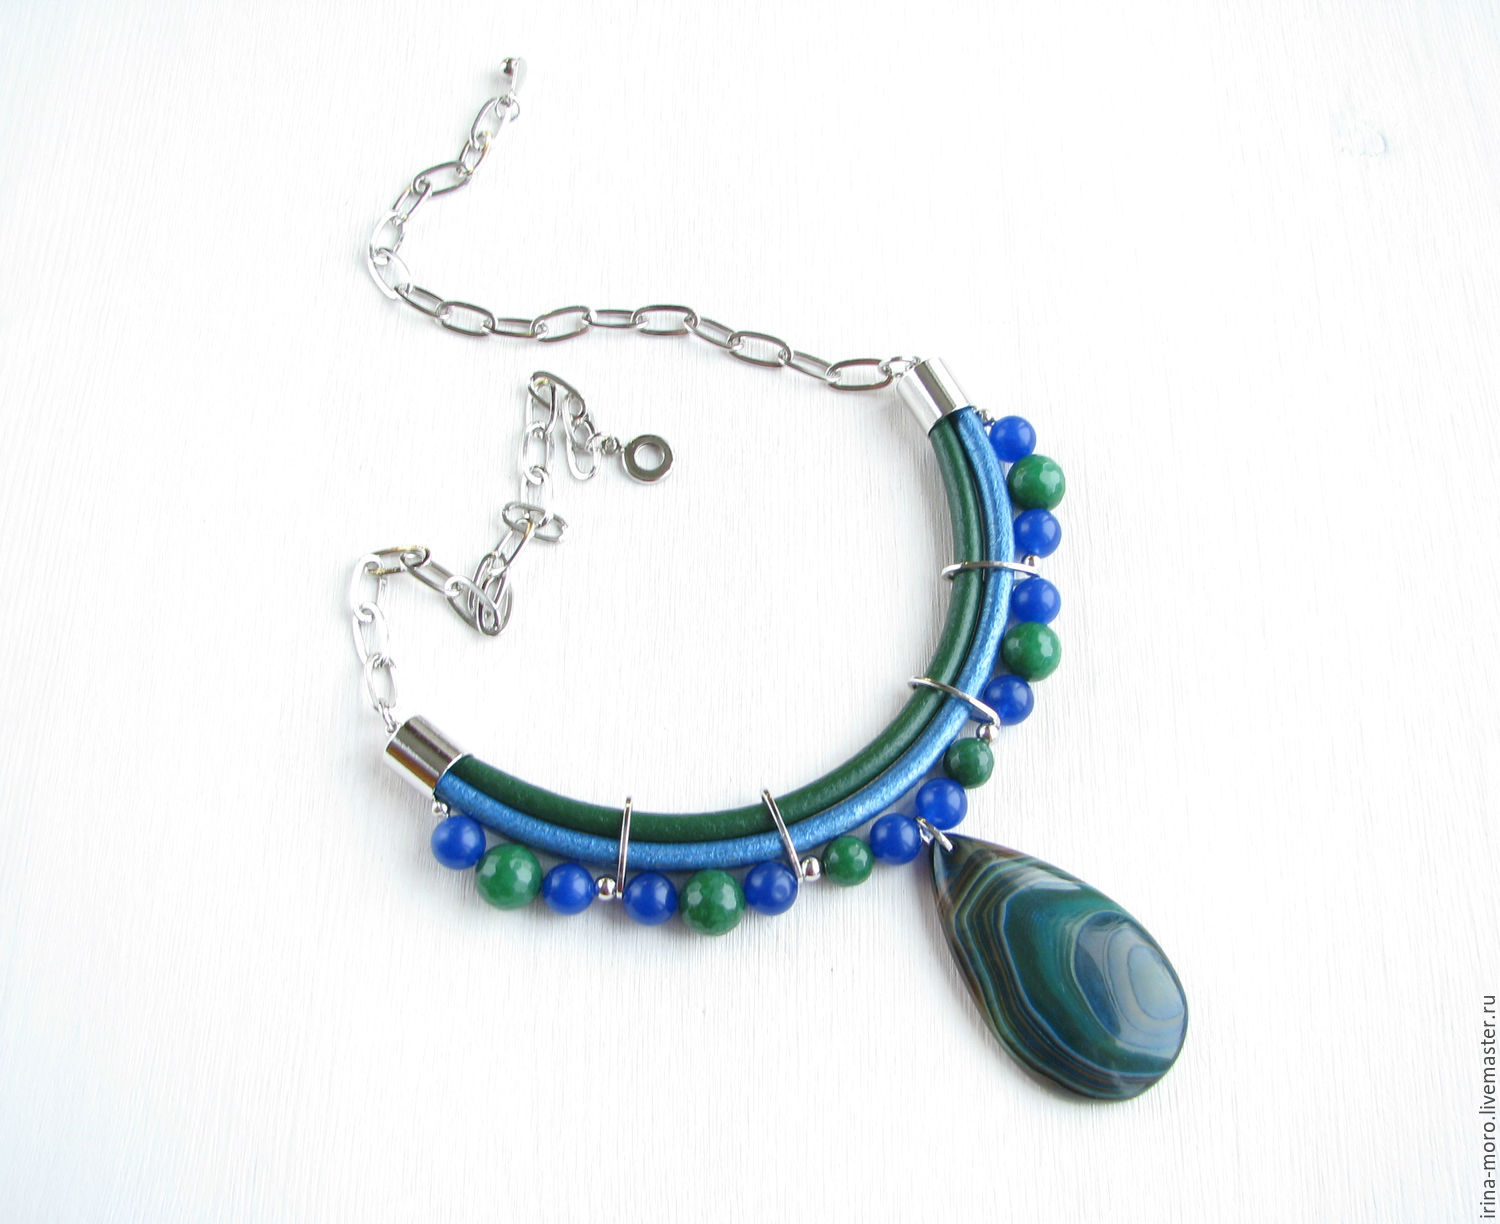 Irina Moro.  handmade necklace. Irene Moreau. Gemstone necklace raboty a Splash of color`. Silver necklace with agate pendant and agate. Emerald necklace. necklace with pendant. Necklace pendant.